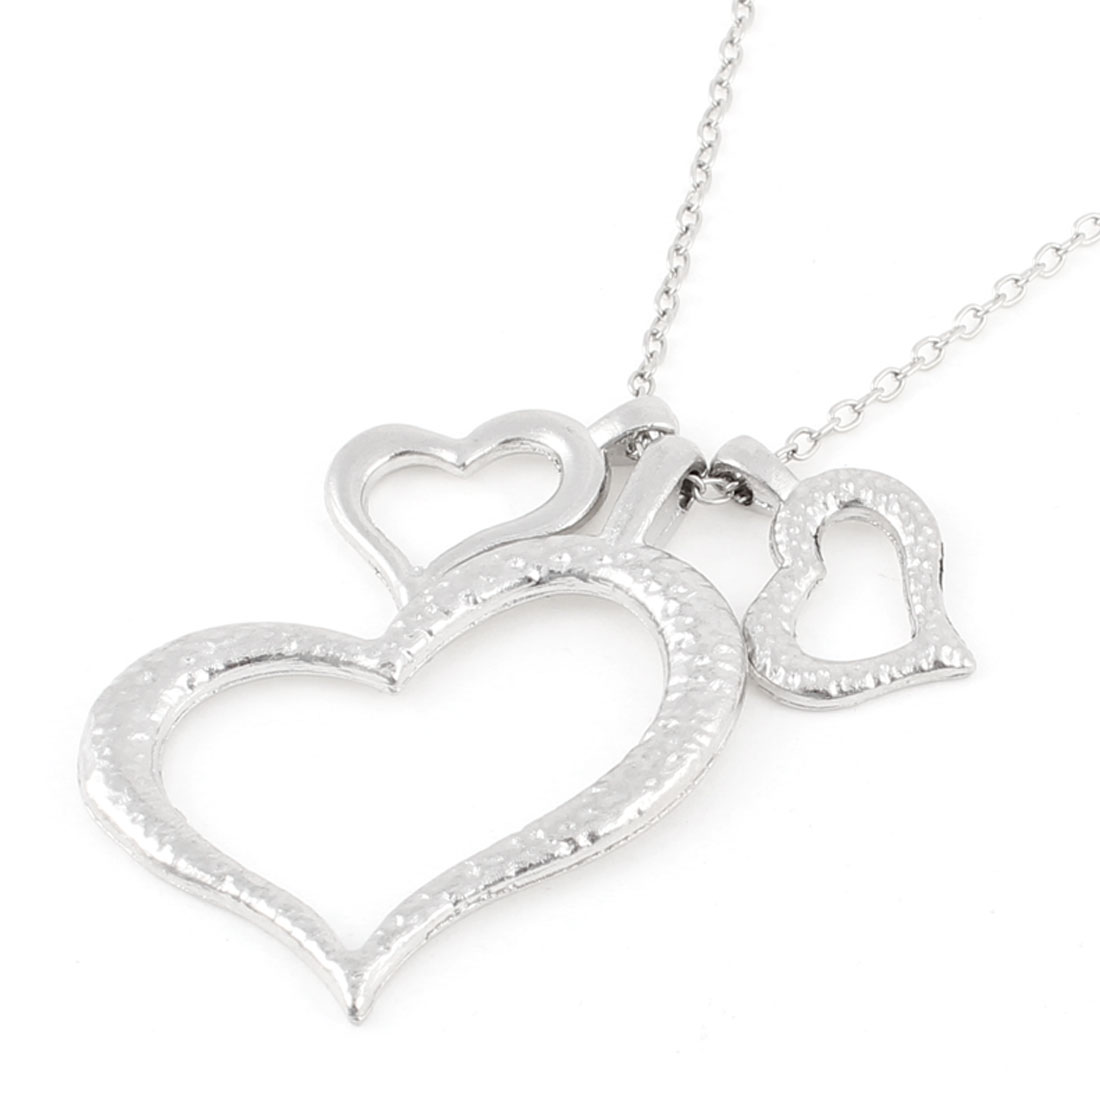 Silver Tone Hearts Pendant Slim Metal Chain Necklace for Lady